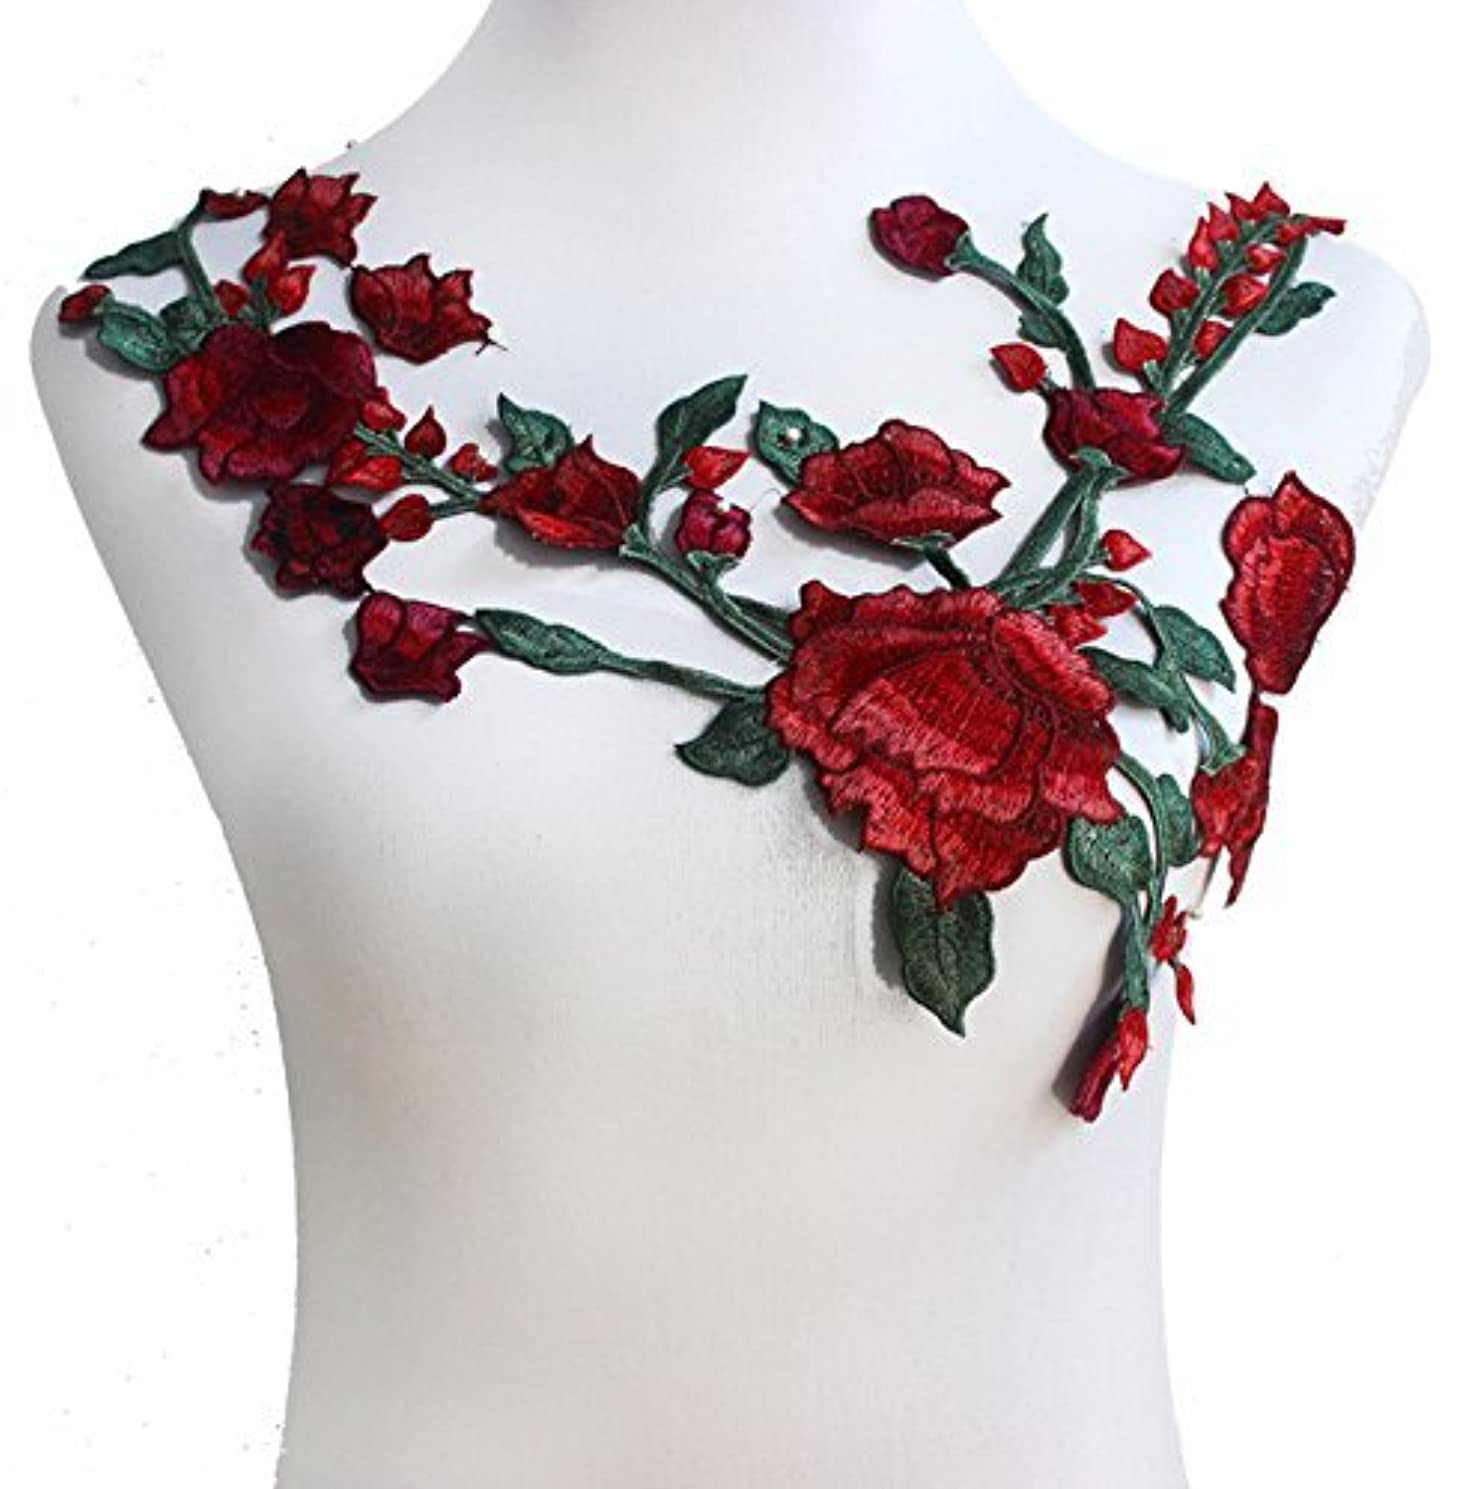 Lace Neckline Collar Red Green Flower Embroidered Motif Applique Lace Fabrics Venise Sew on Patches Scrapbooking T1417( 1piece)